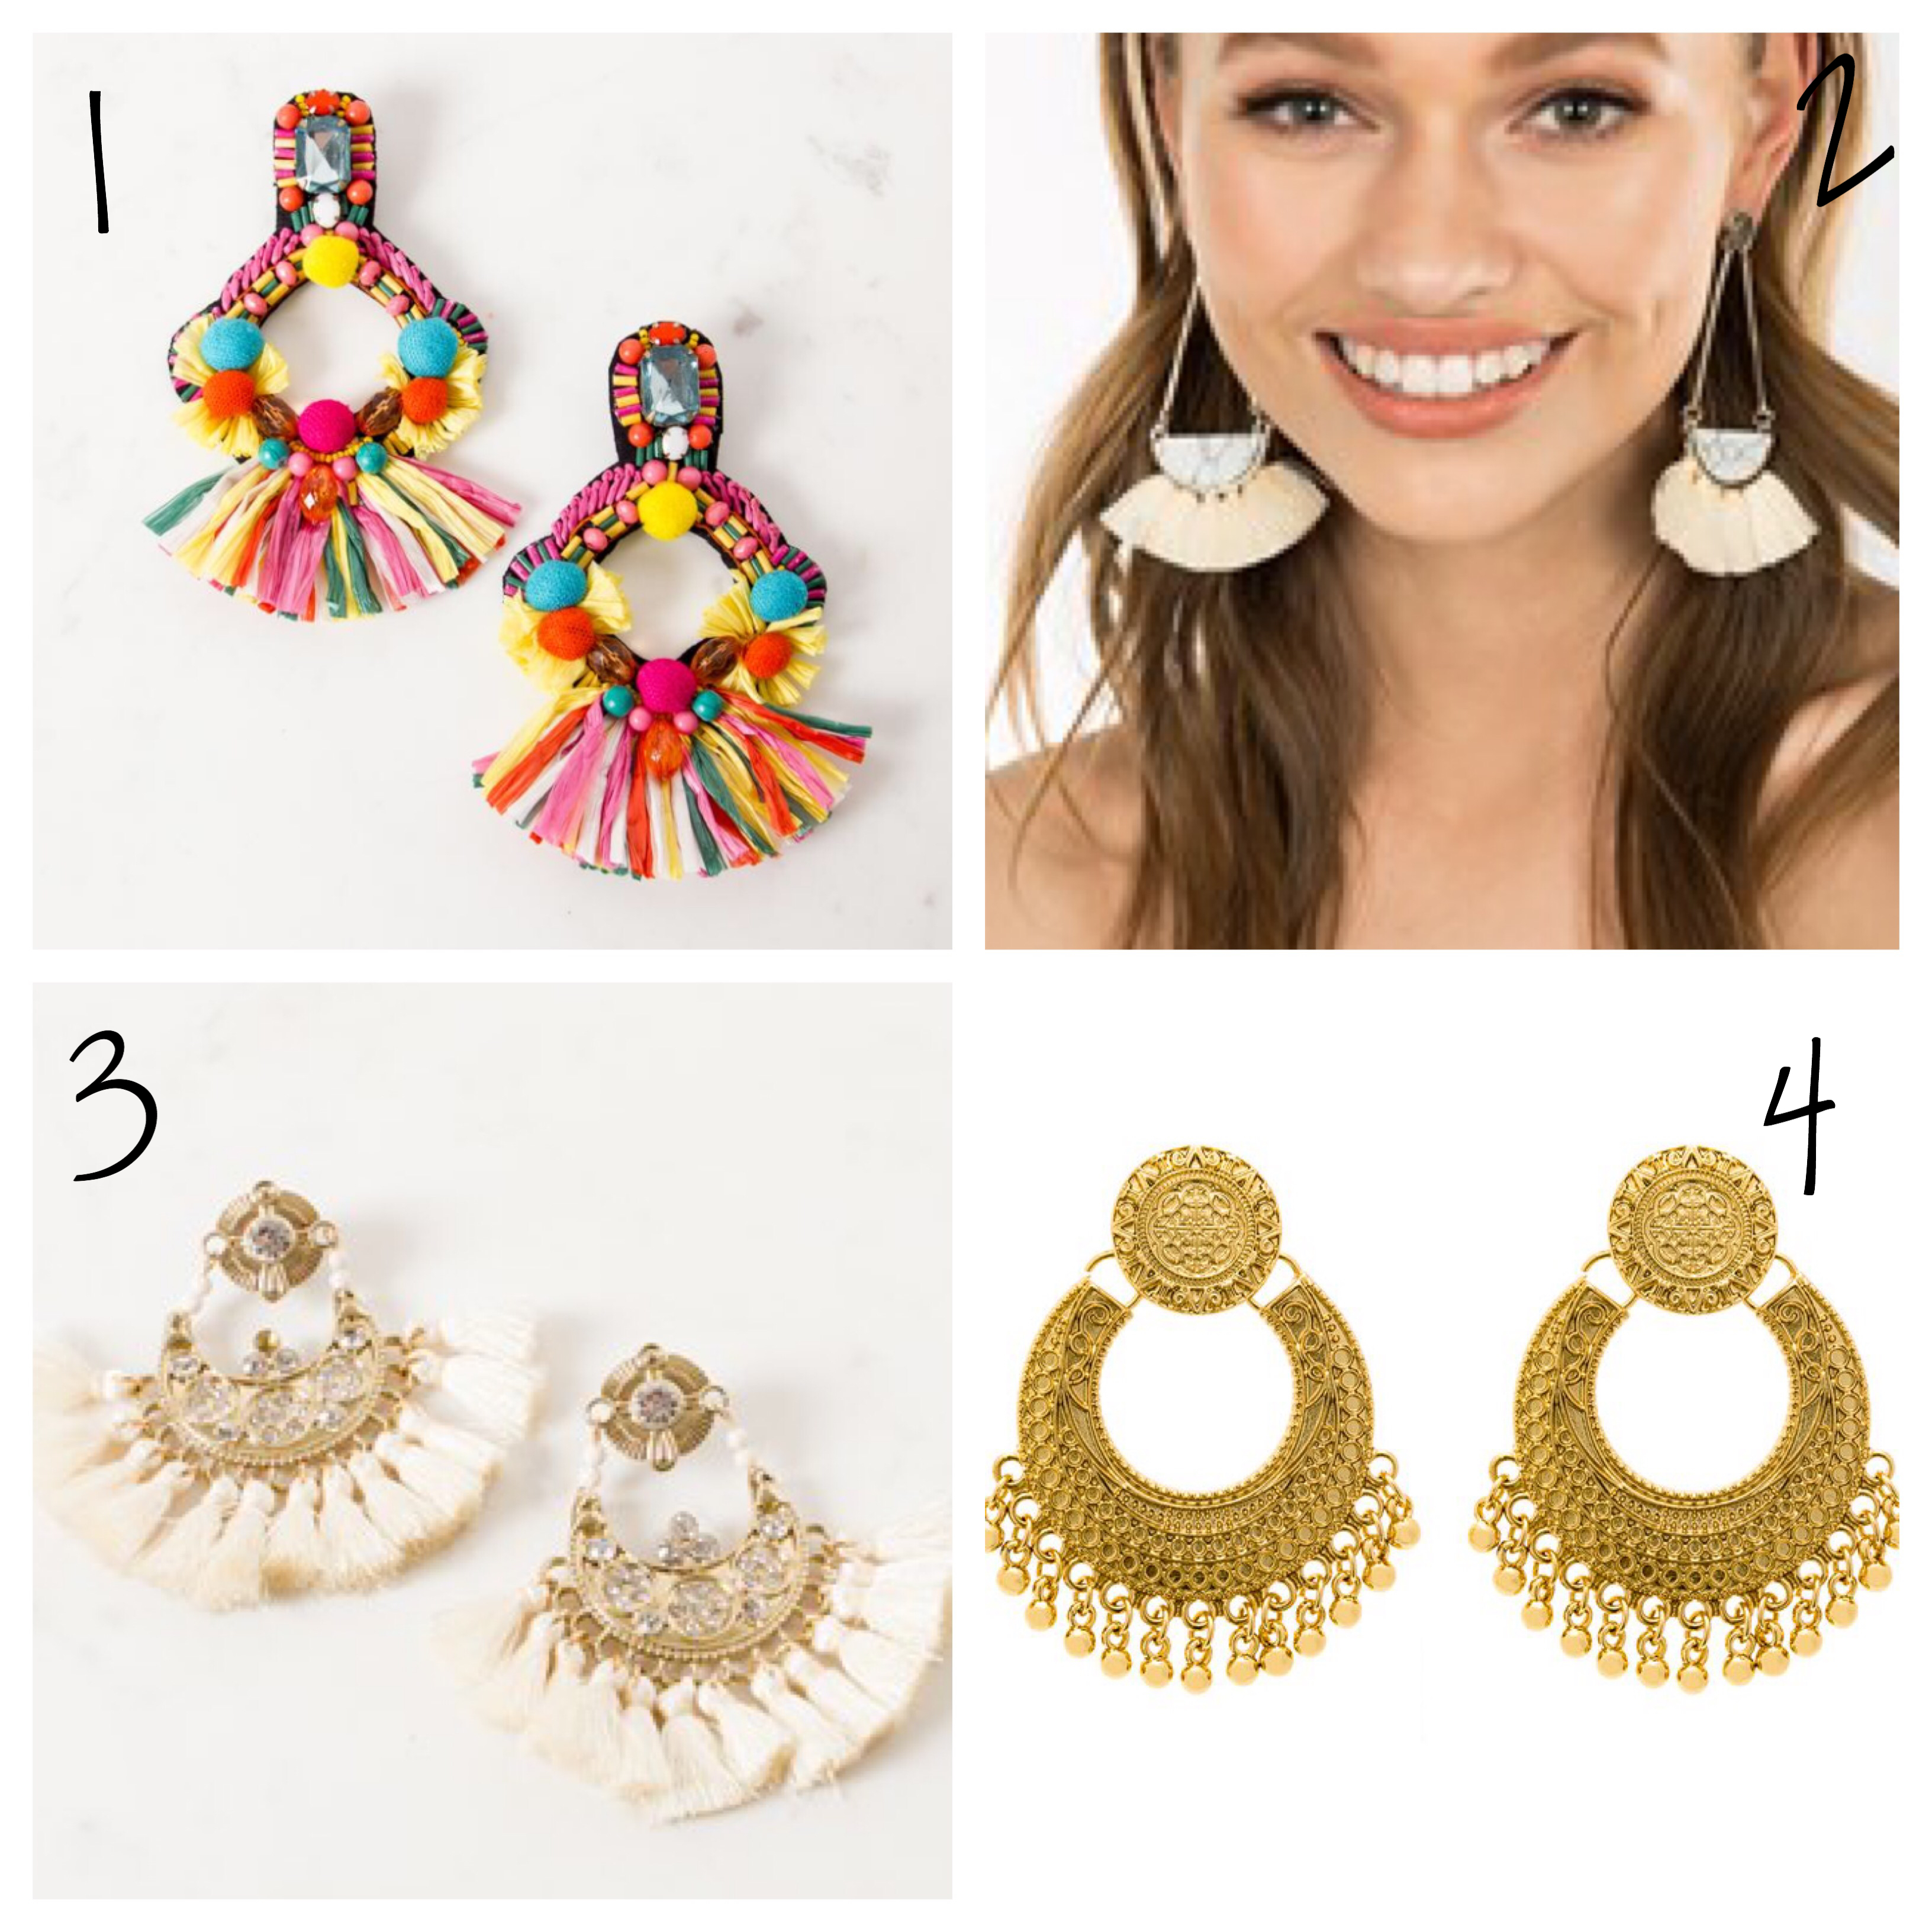 Statement earrings under $50 available online